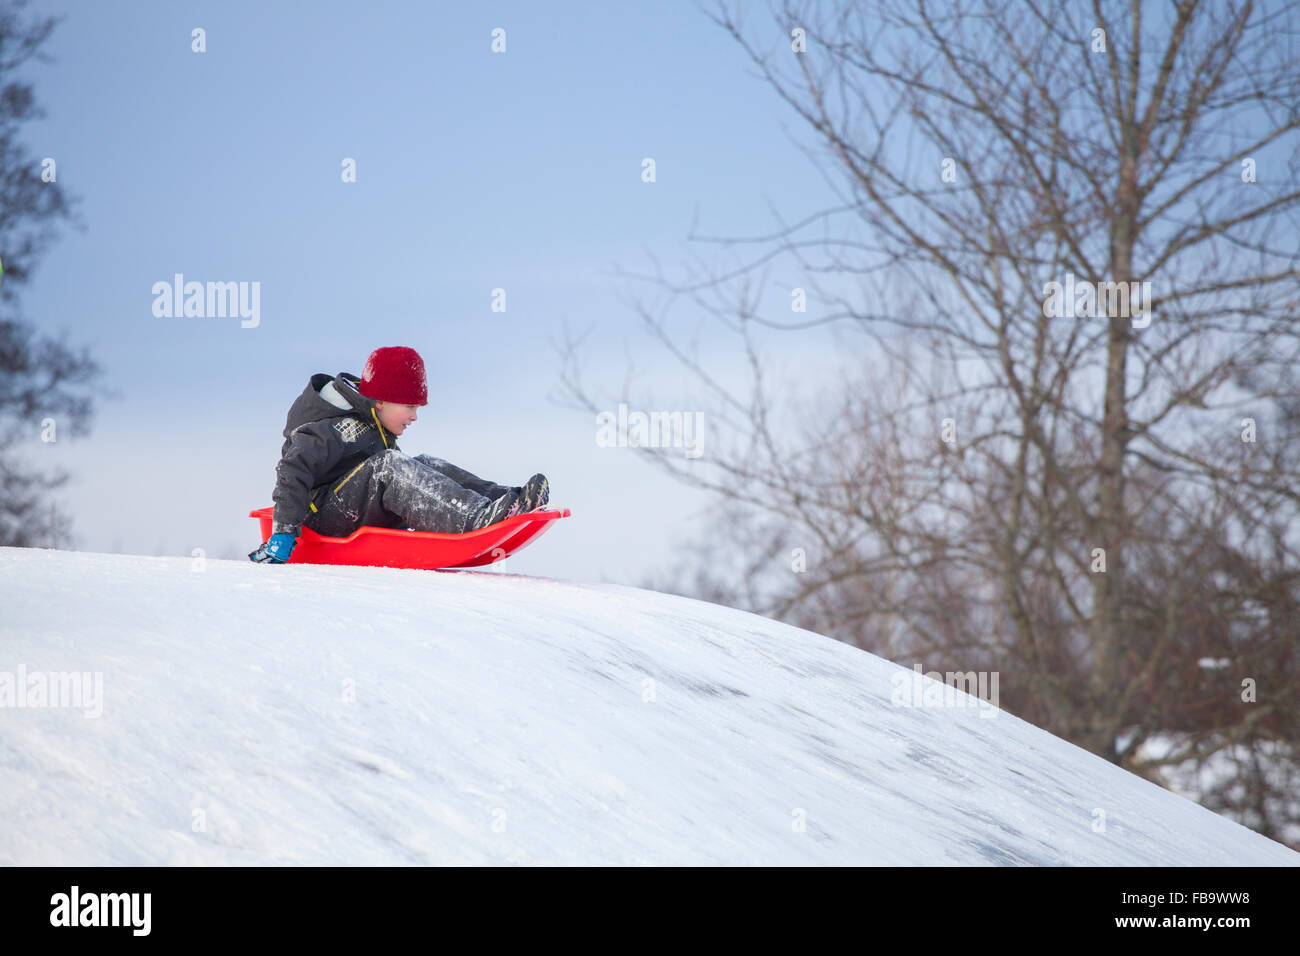 Sweden, Vastergotland, Lerum, Boy (8-9) on sled - Stock Image